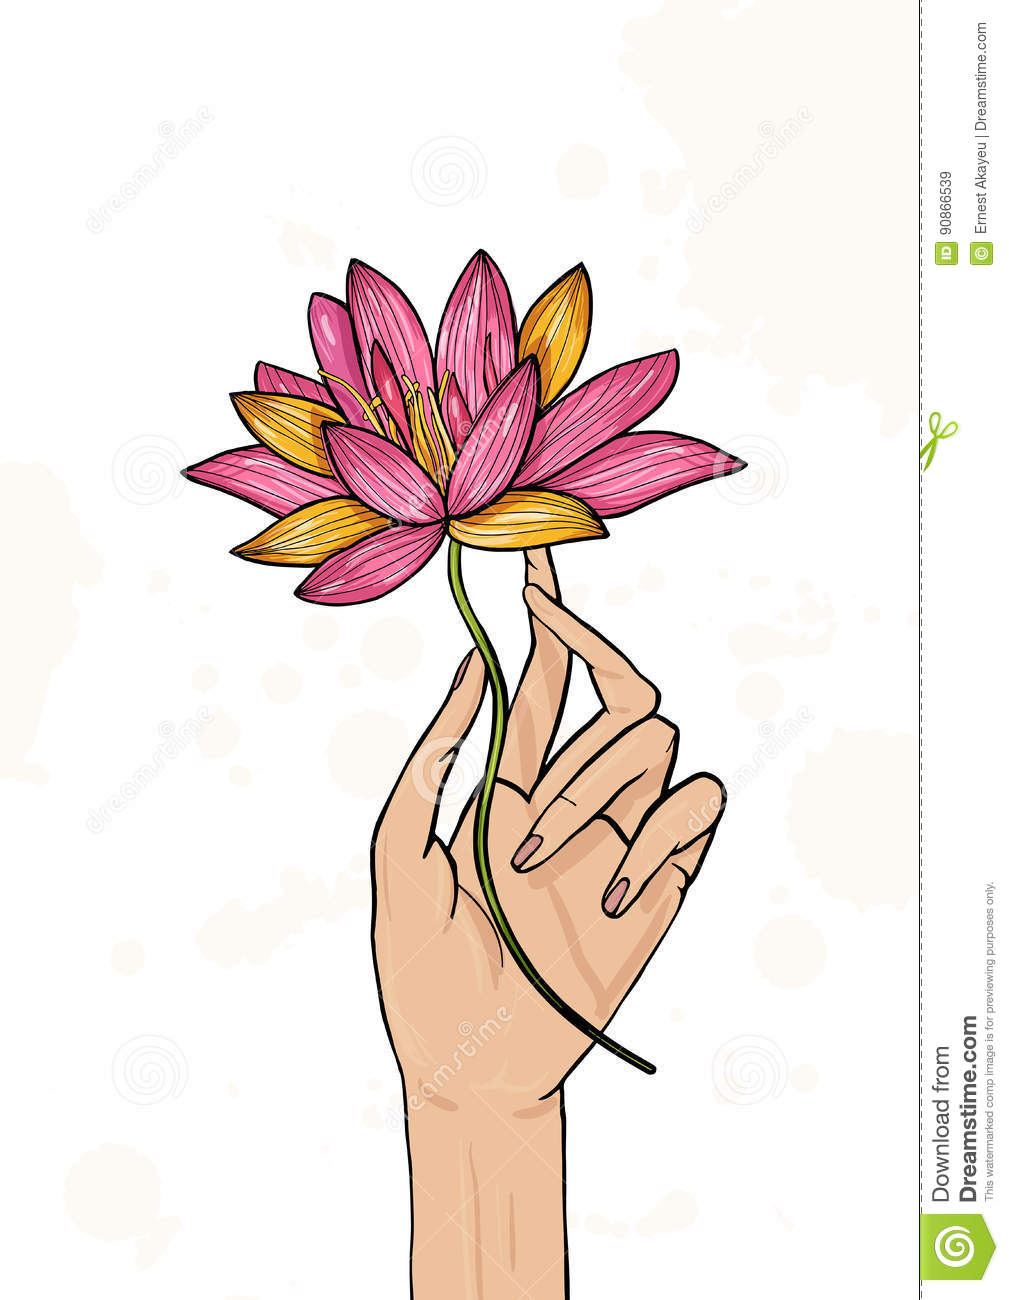 Hand Holding Lotus Flower Colorful Hand Drawn Illustration Yoga